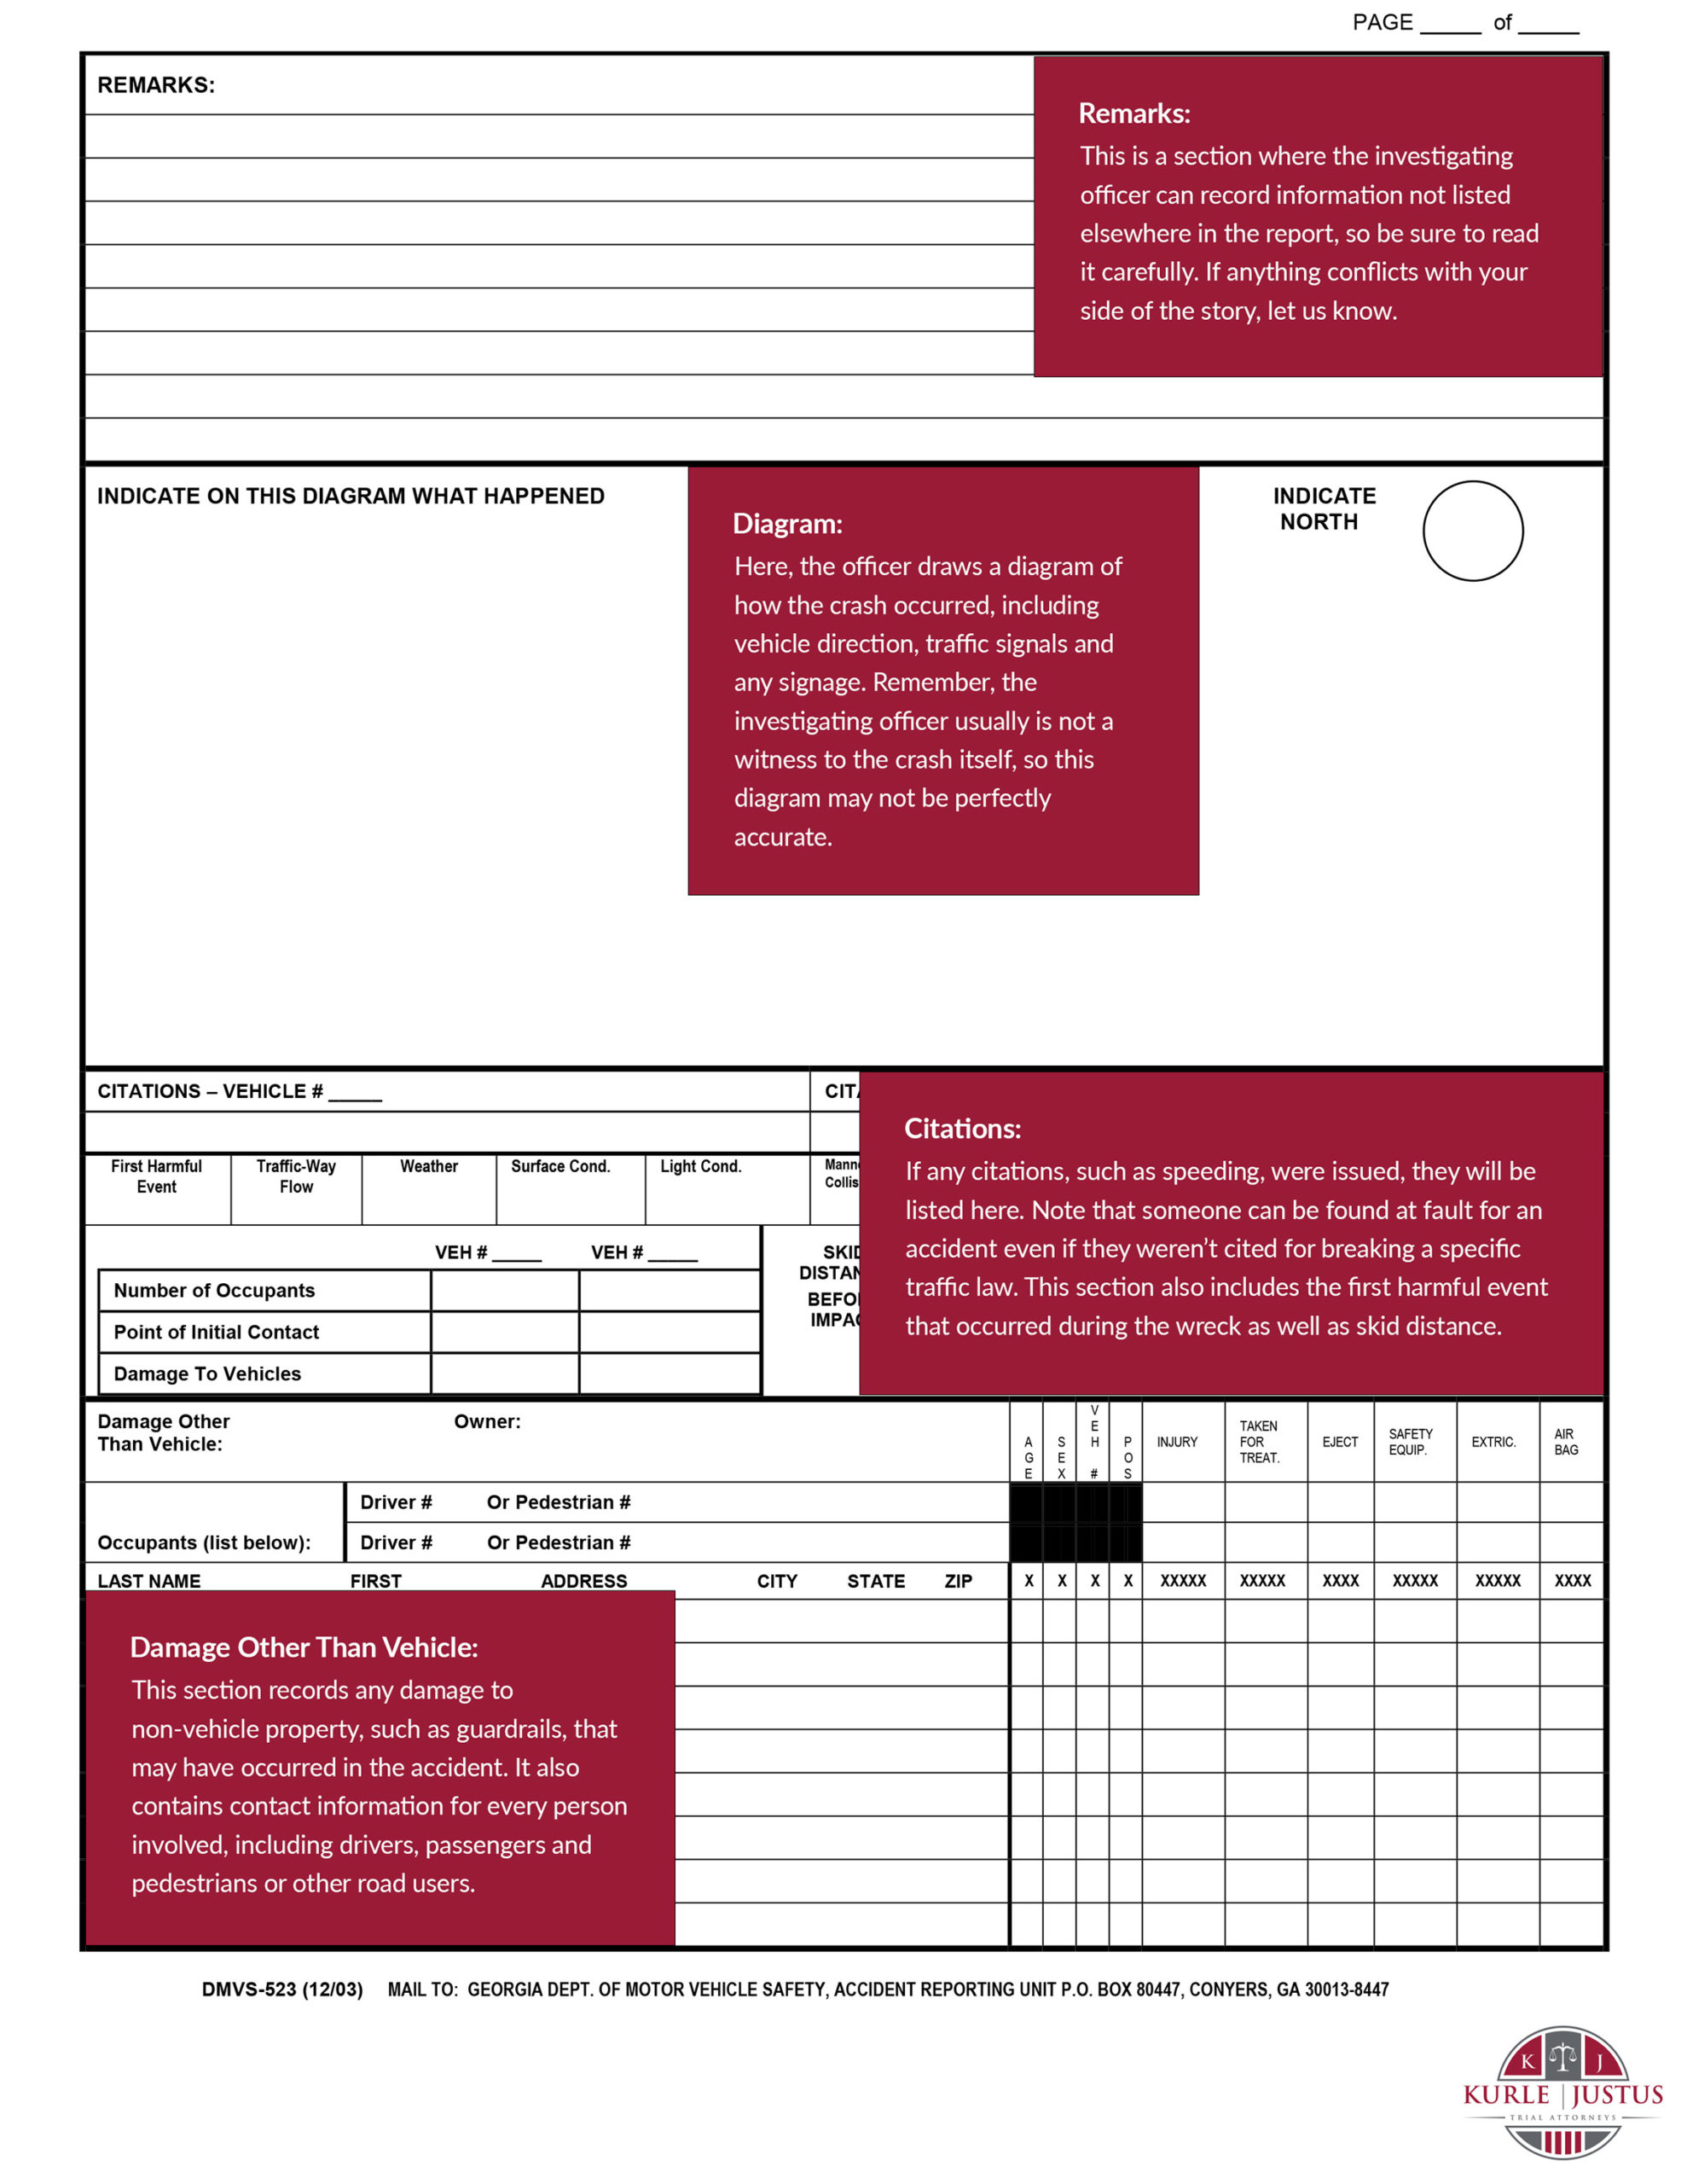 Accident Report instructions